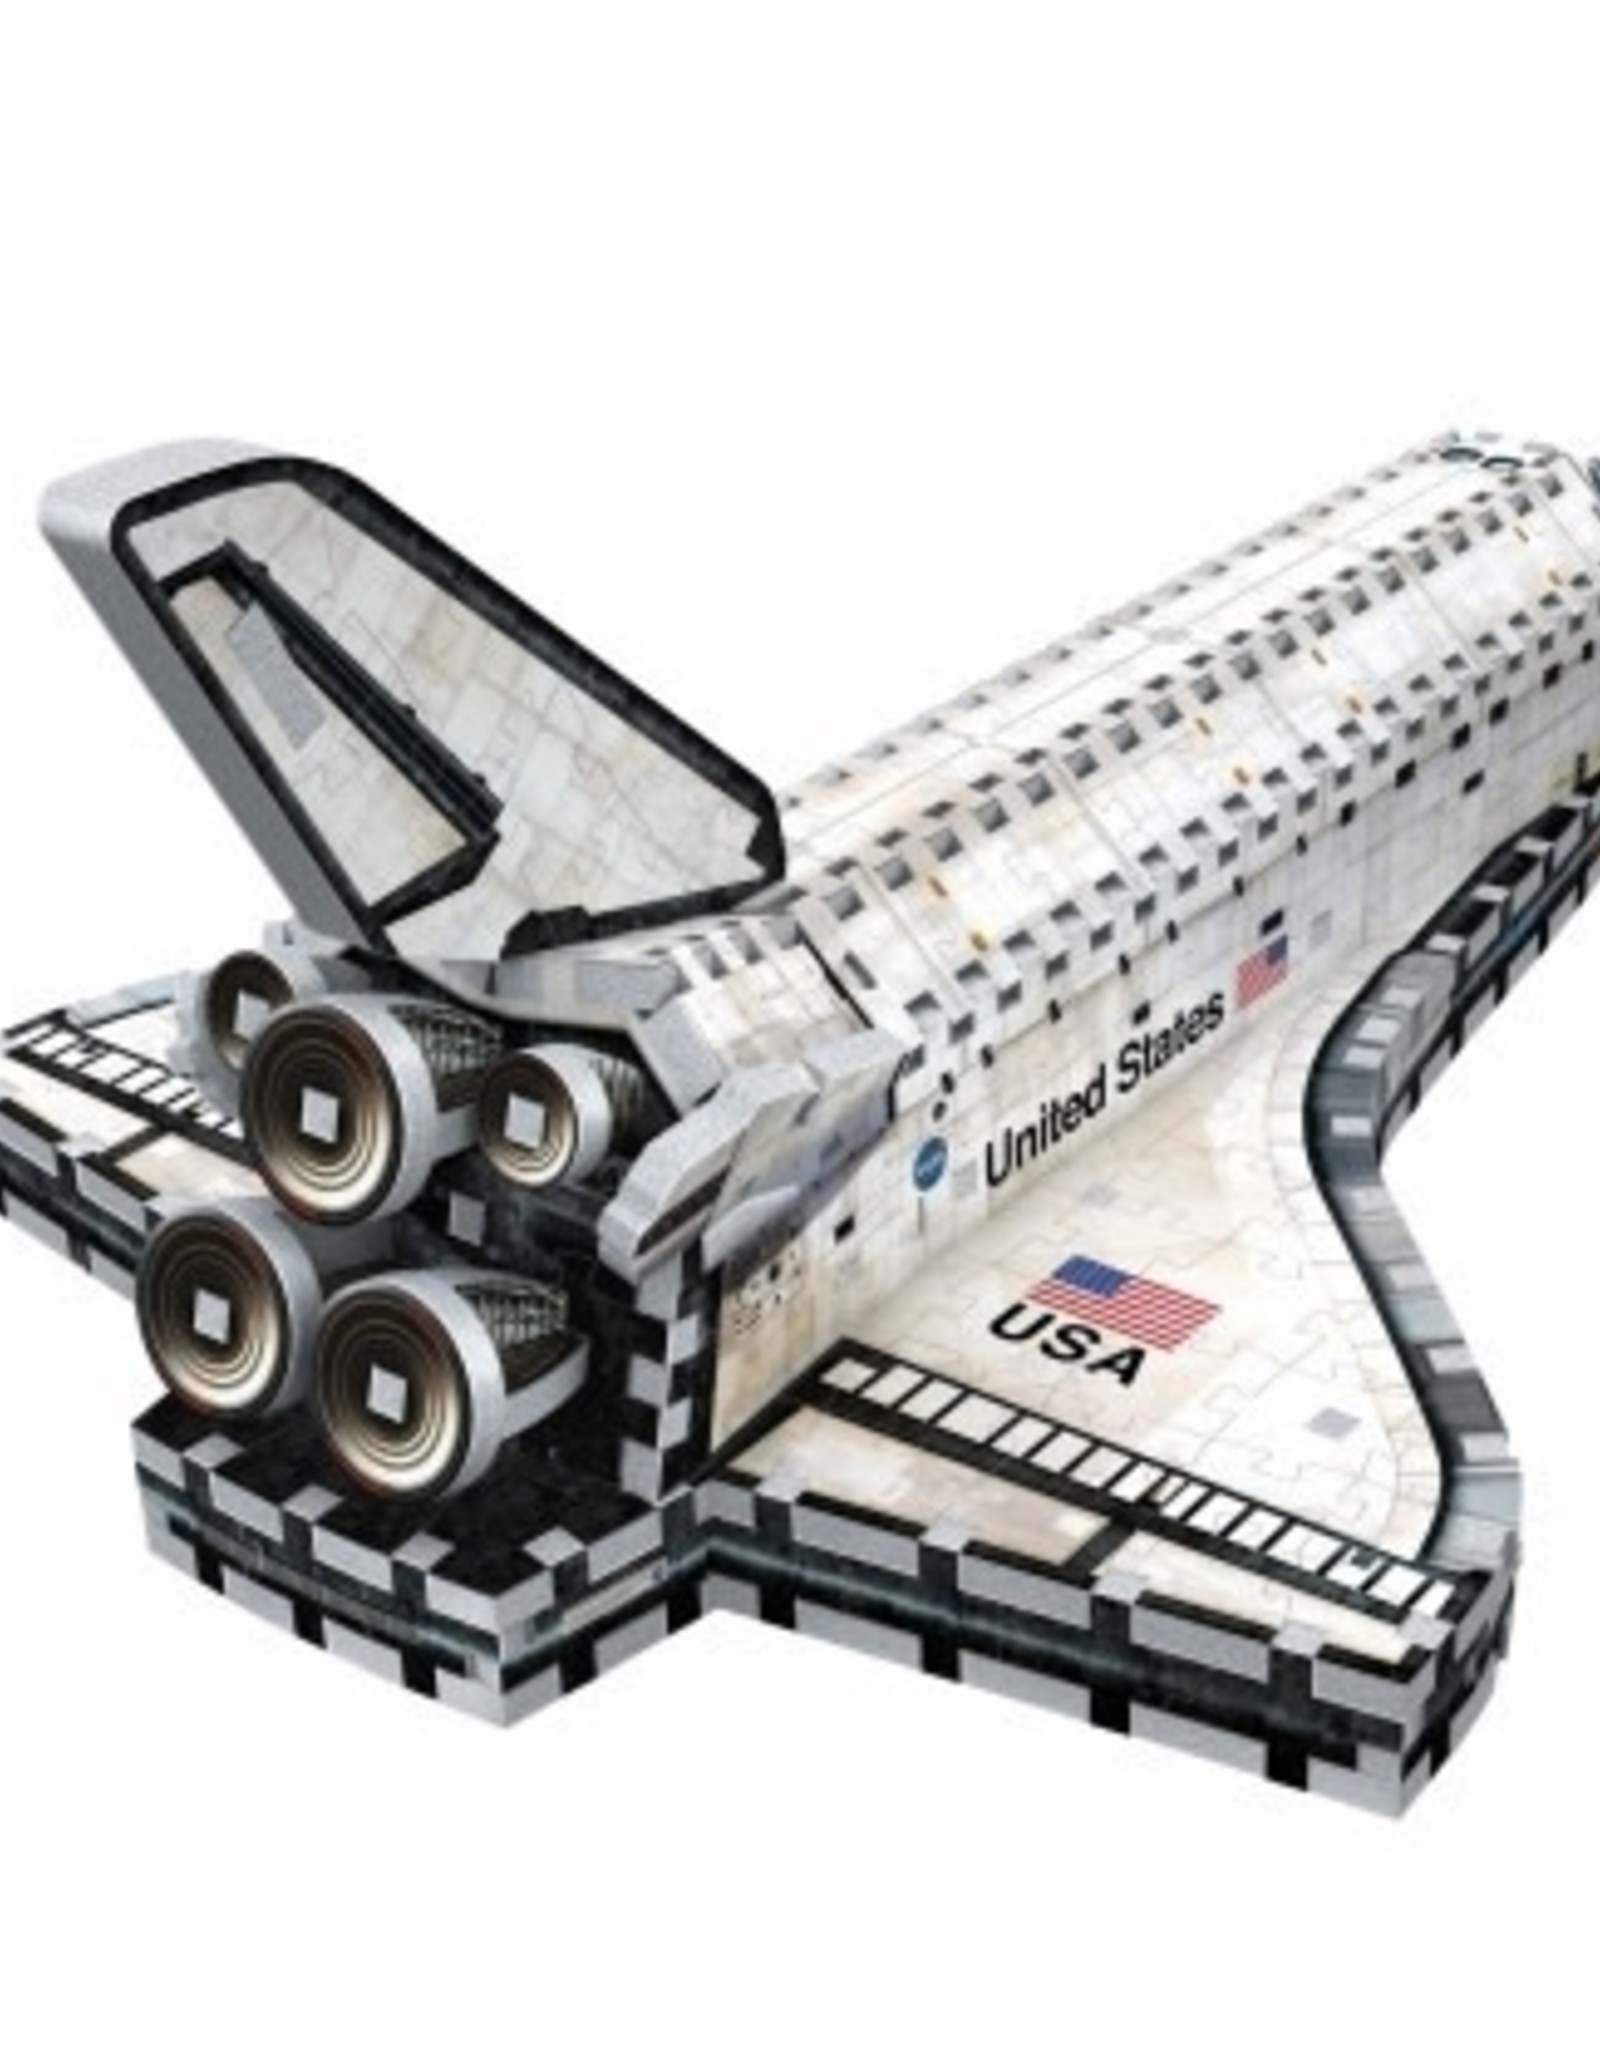 Wrebbit Puzzles SPACE SHUTTLE ORBITER